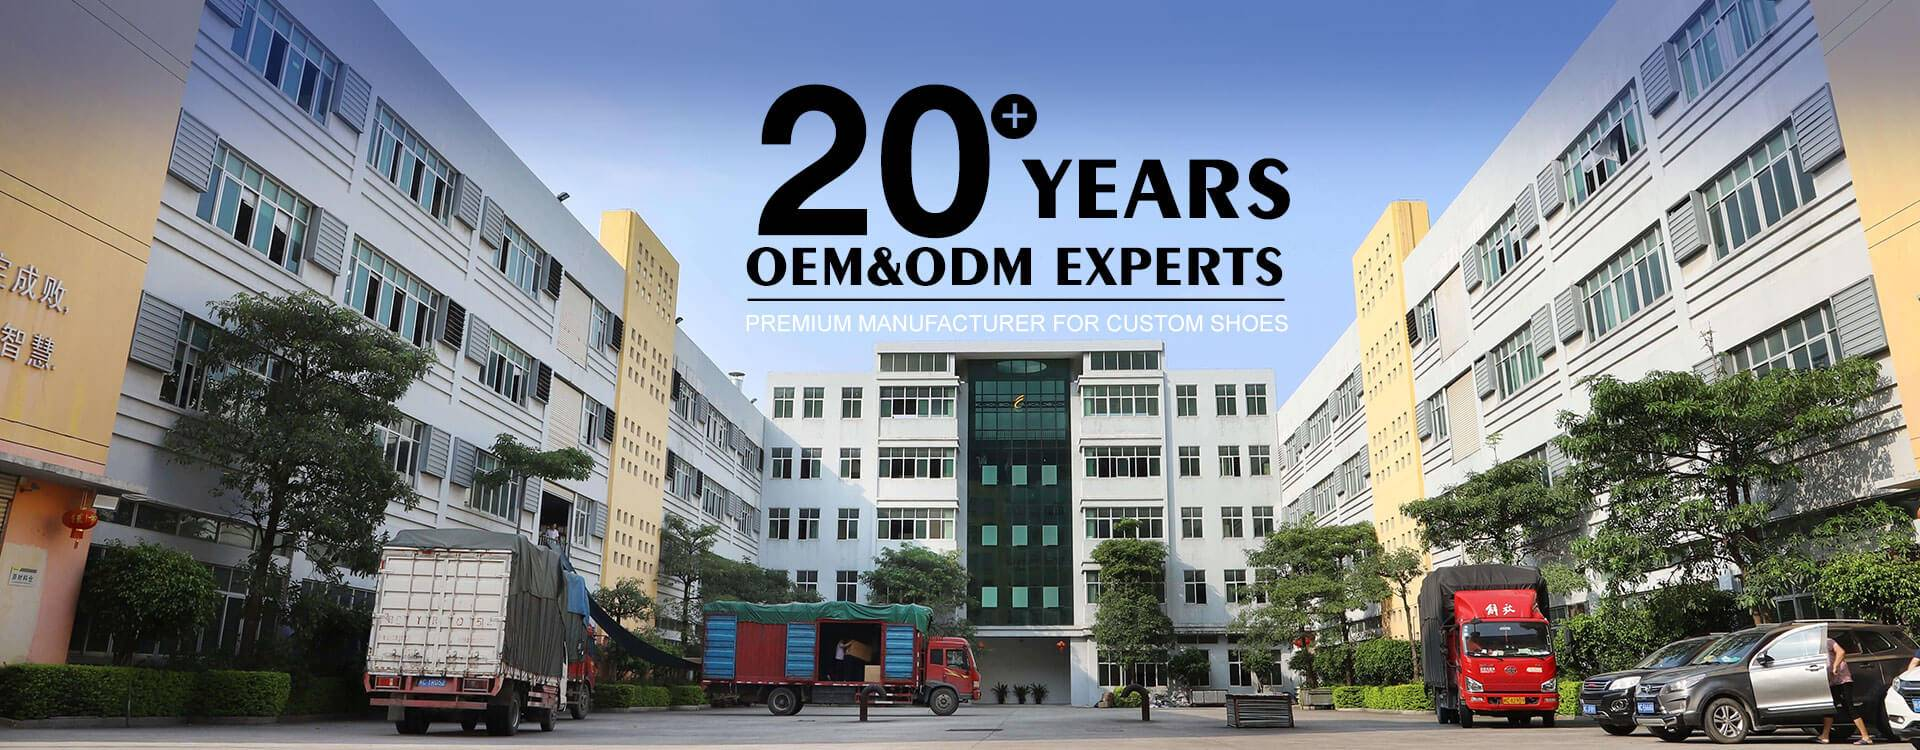 20+ YEARS OEM&ODM EXPERTS